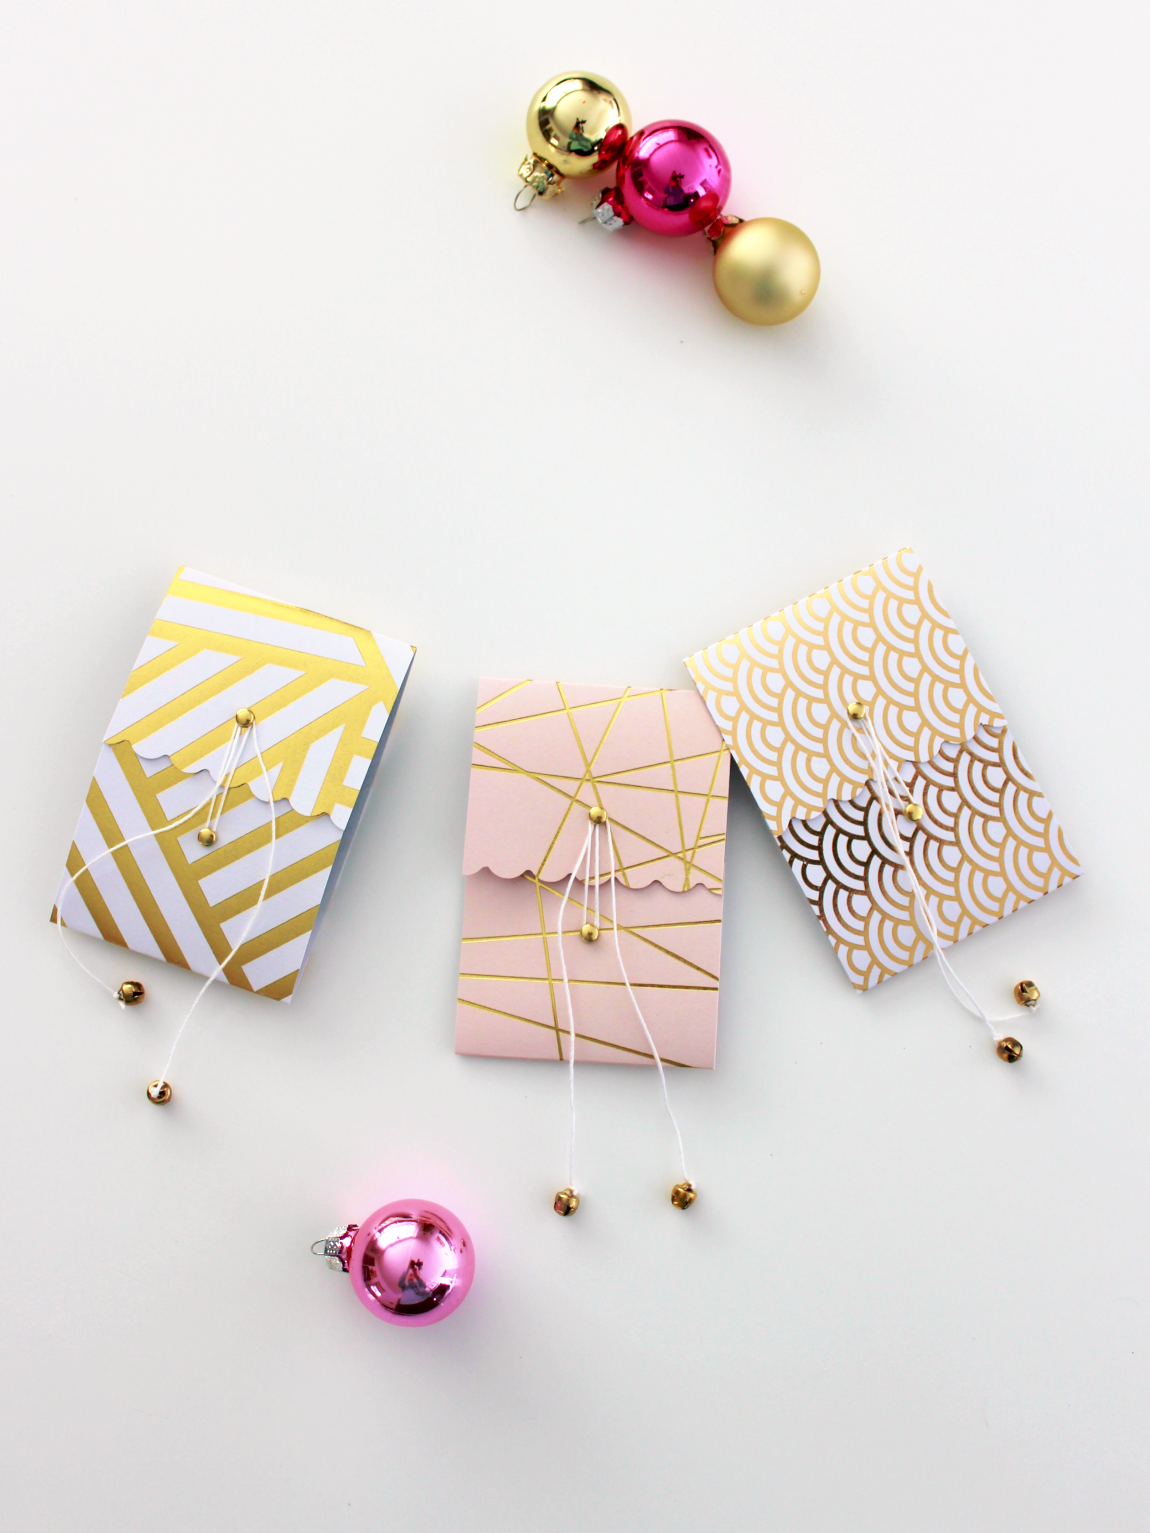 DIY GIFT CARD HOLDERS WITH BELLS ON